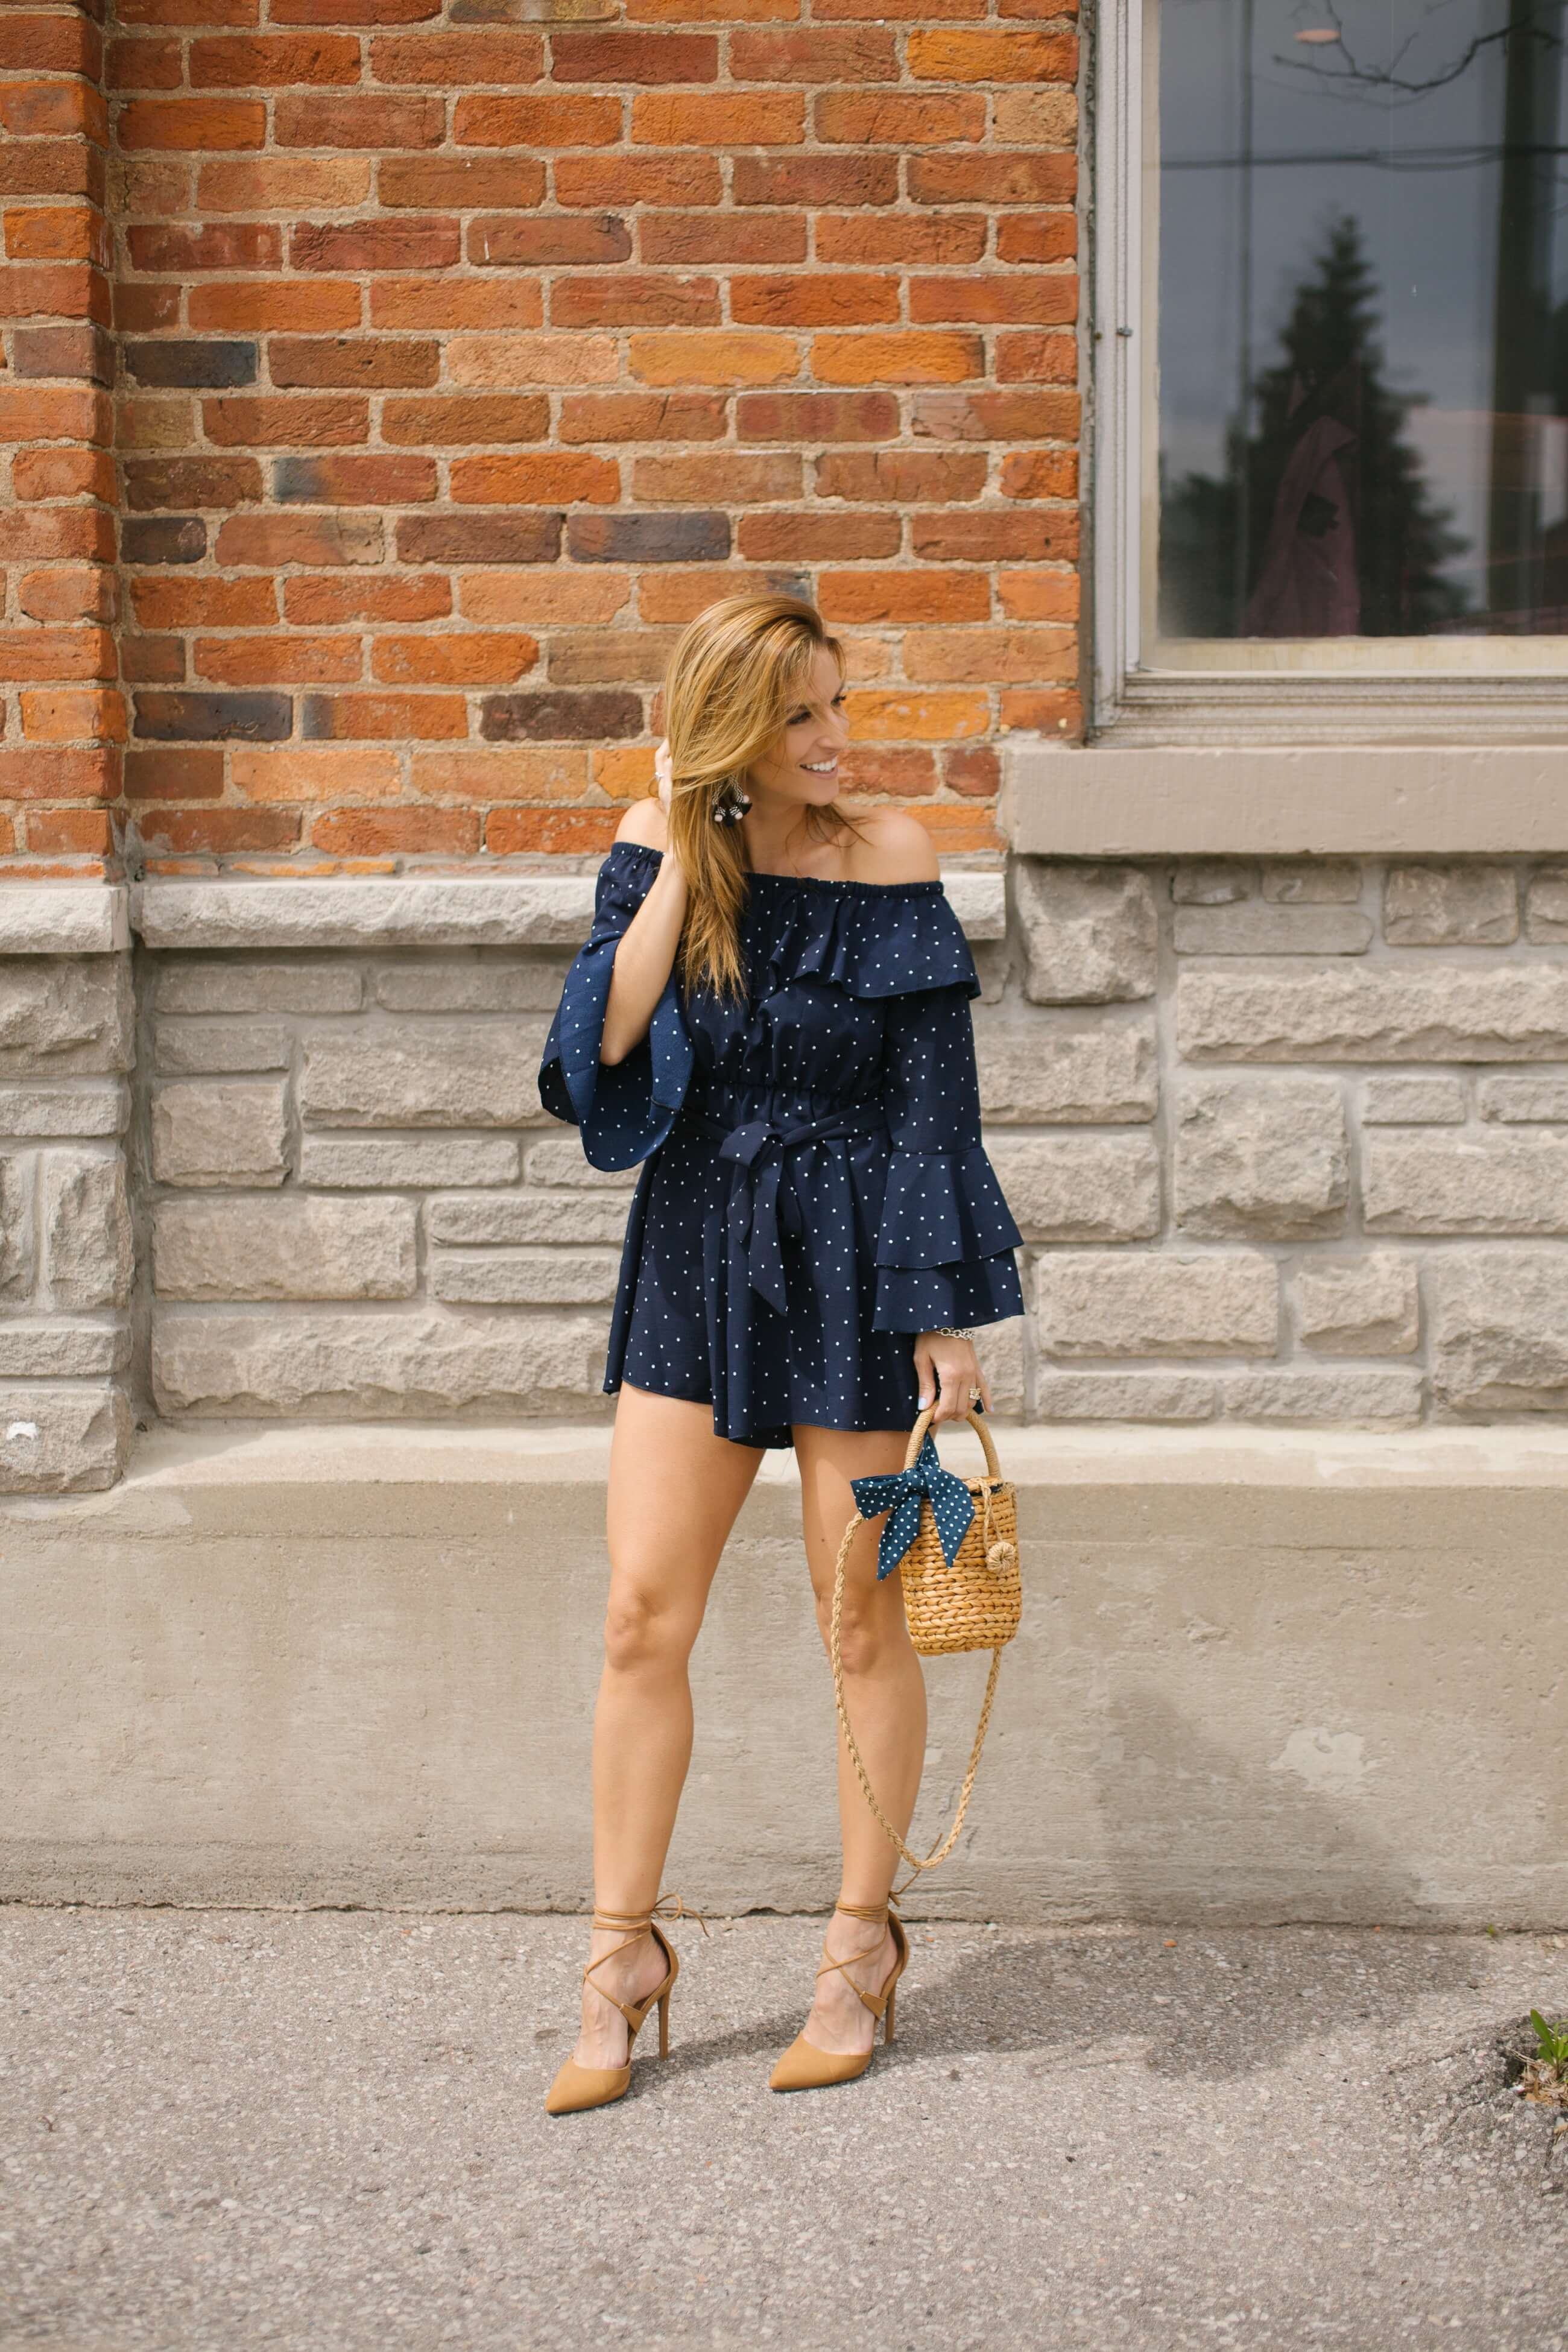 polkadot romper; basket bag, lace up nude heels, statement earrings from Baublebar; mandy furnis sparkleshinylove; summer romper